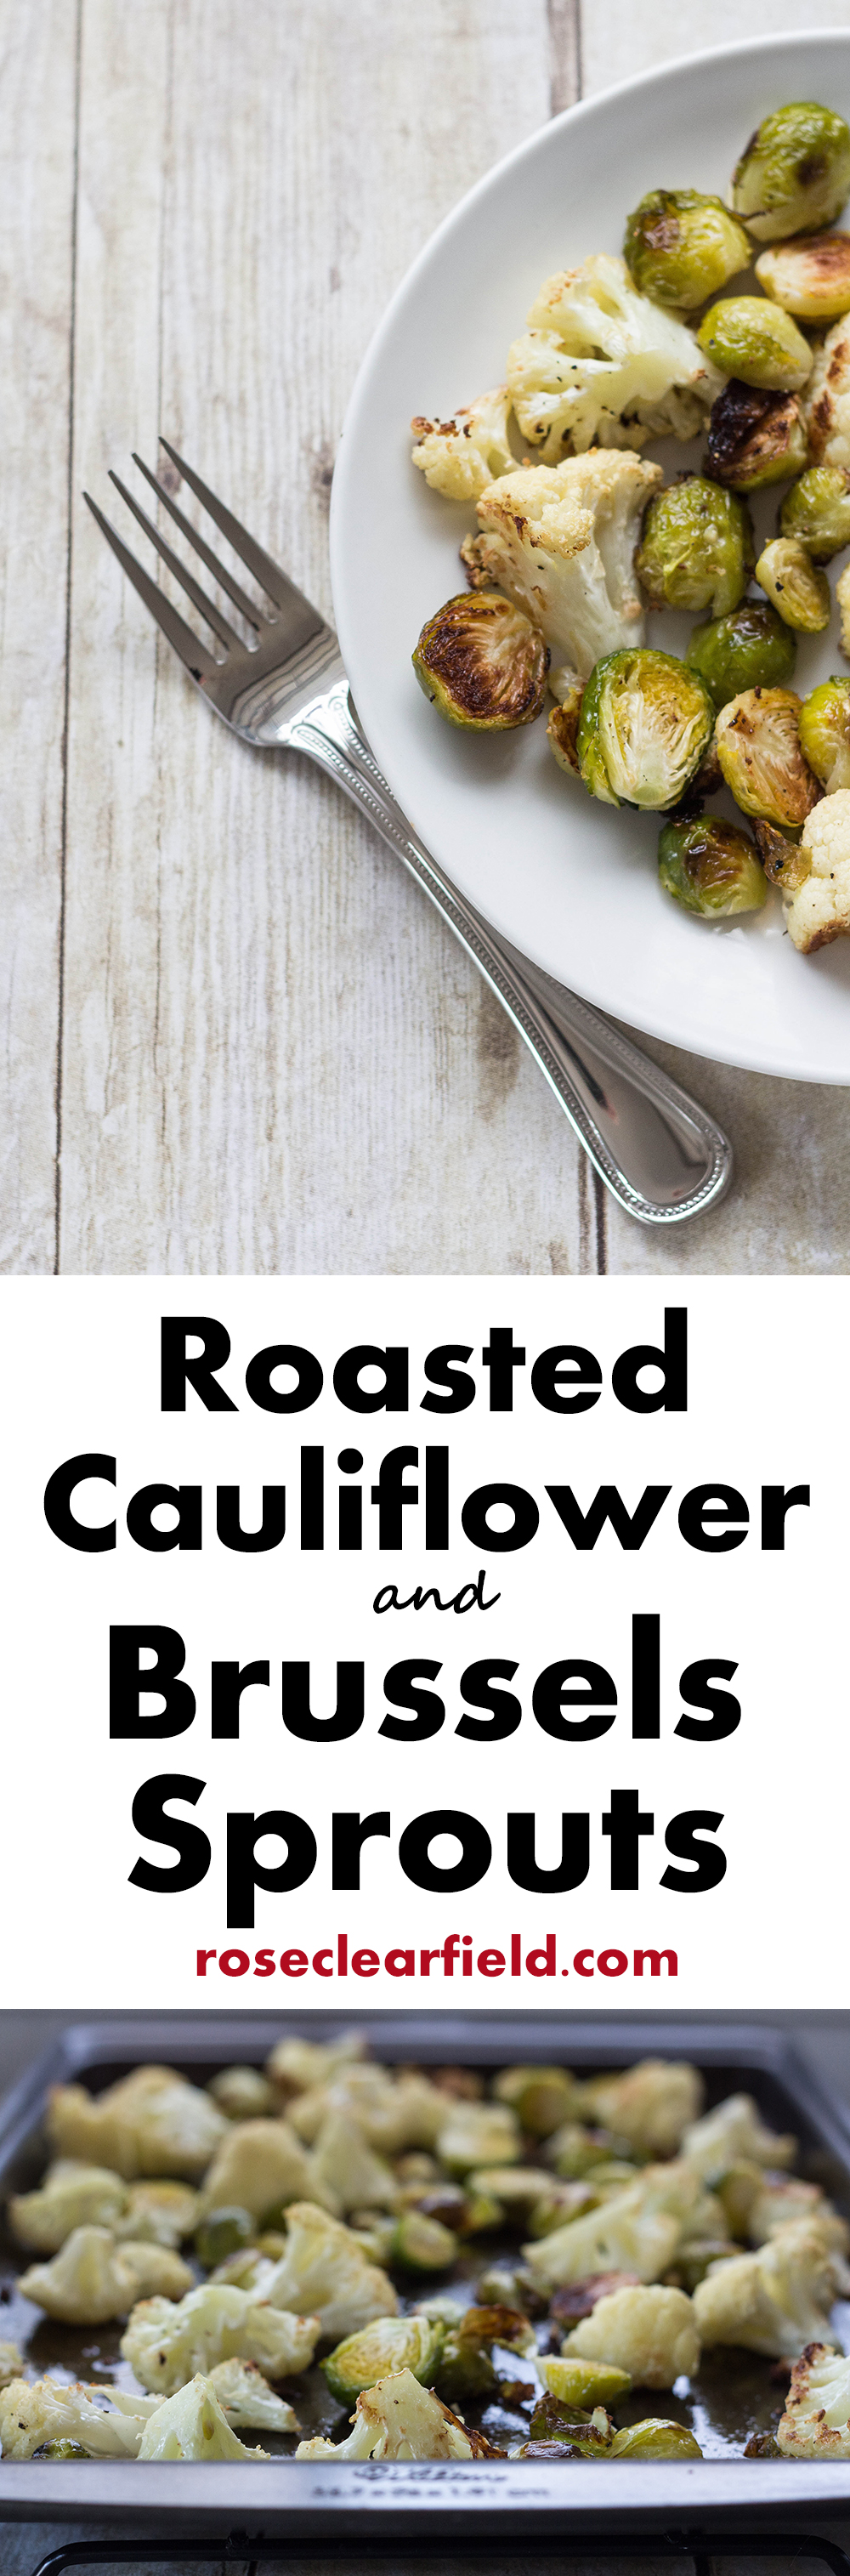 Roasted Cauliflower and Brussels Sprouts...simple, healthy, and delicious! | http://www.roseclearfield.com